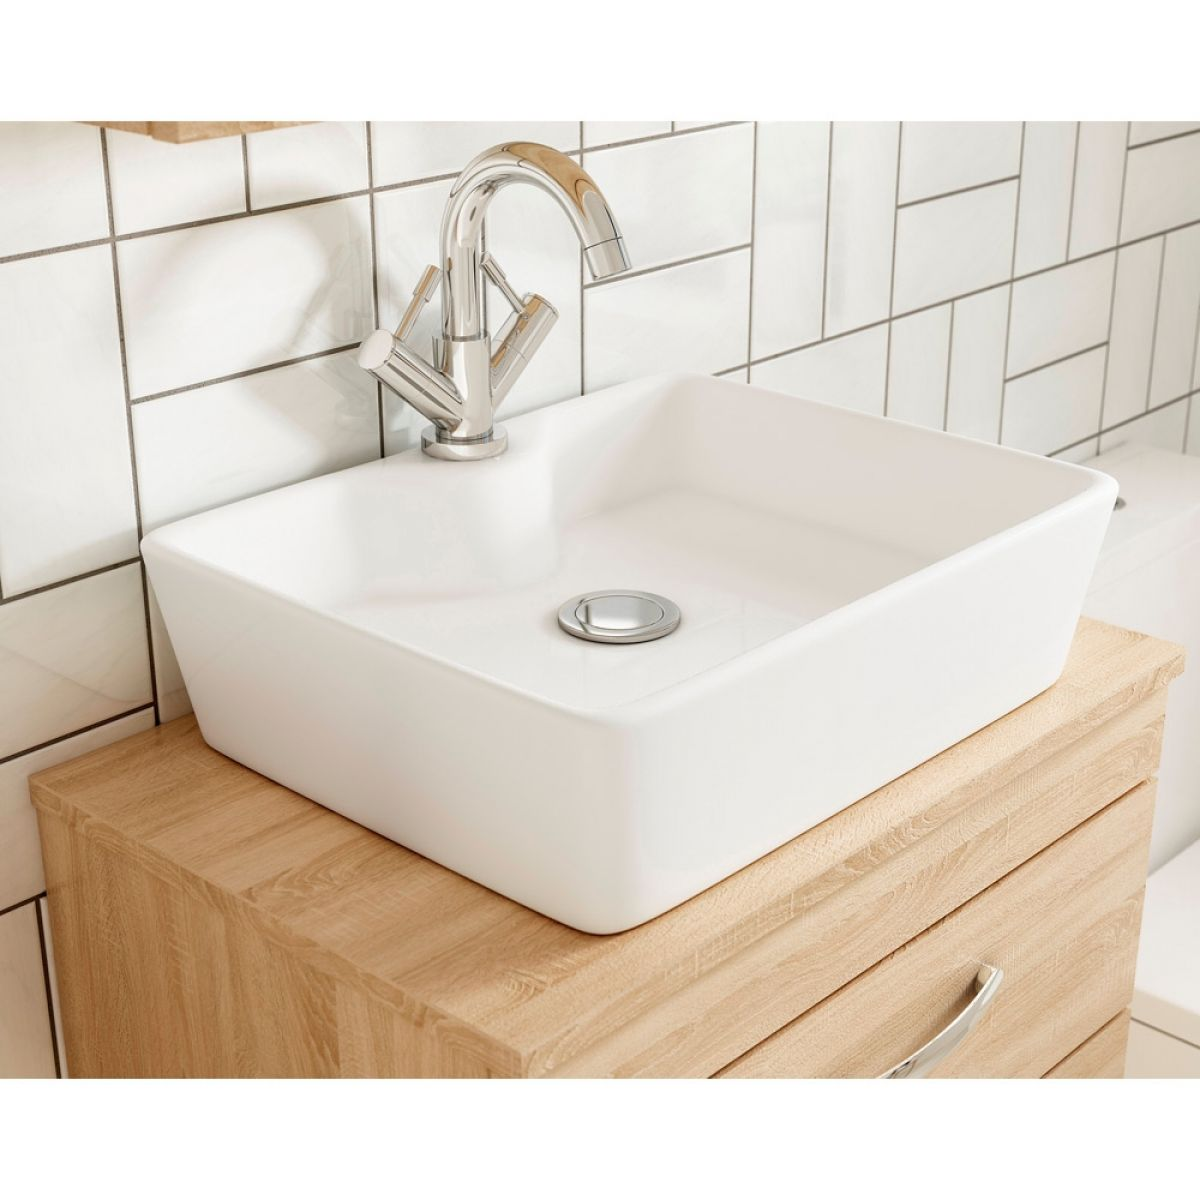 Premier Athena Basin Option 4 -  Worktop